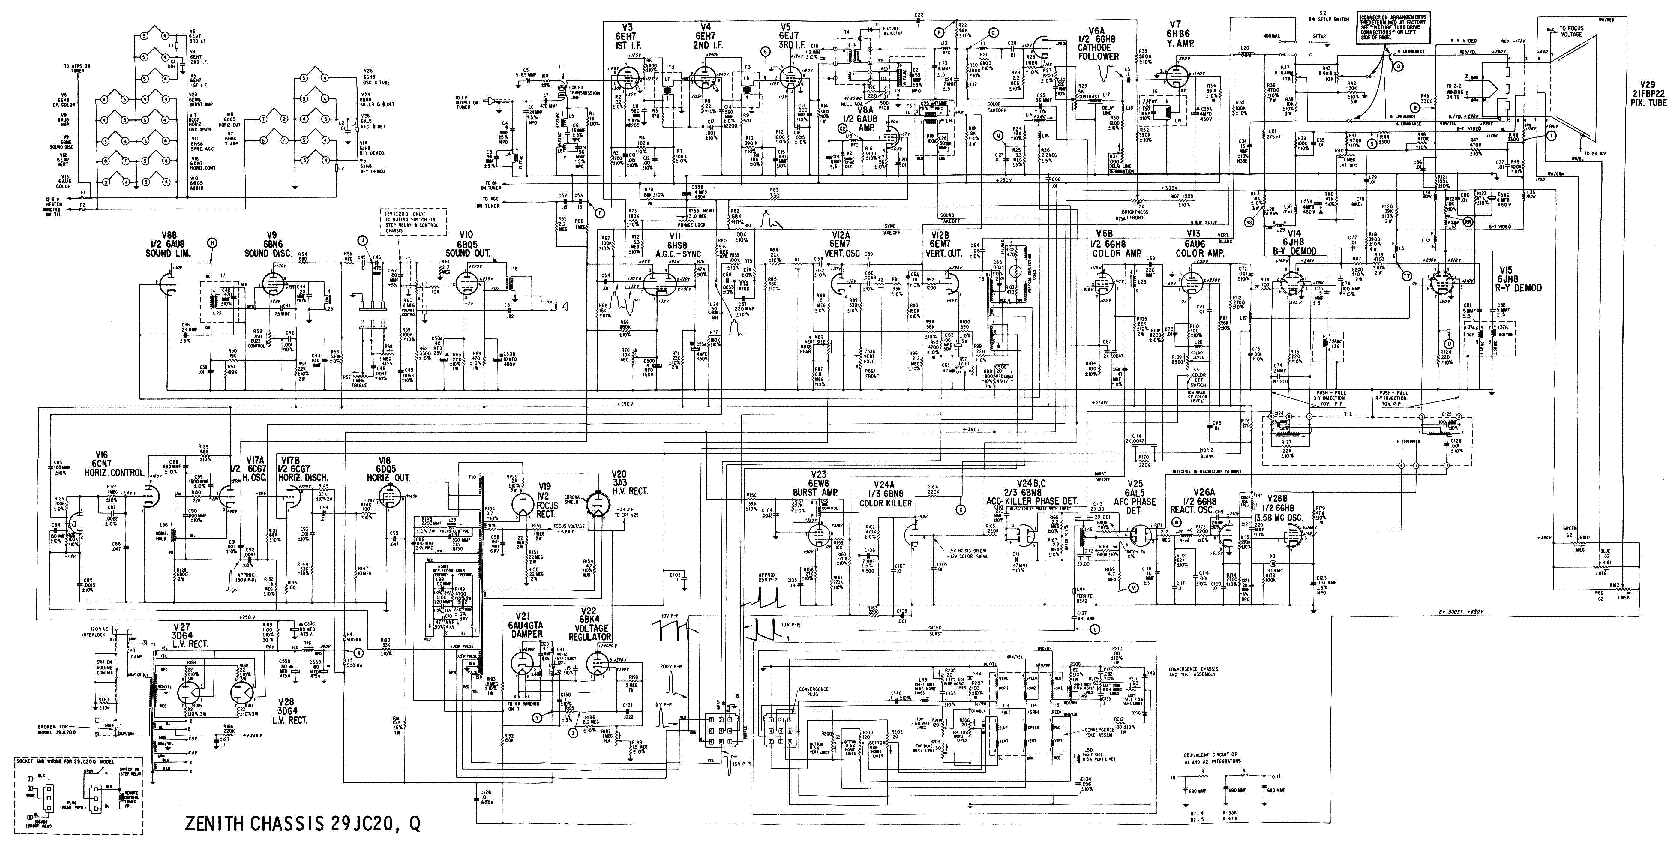 ZENITH 29JC20 SCH Service Manual download, schematics